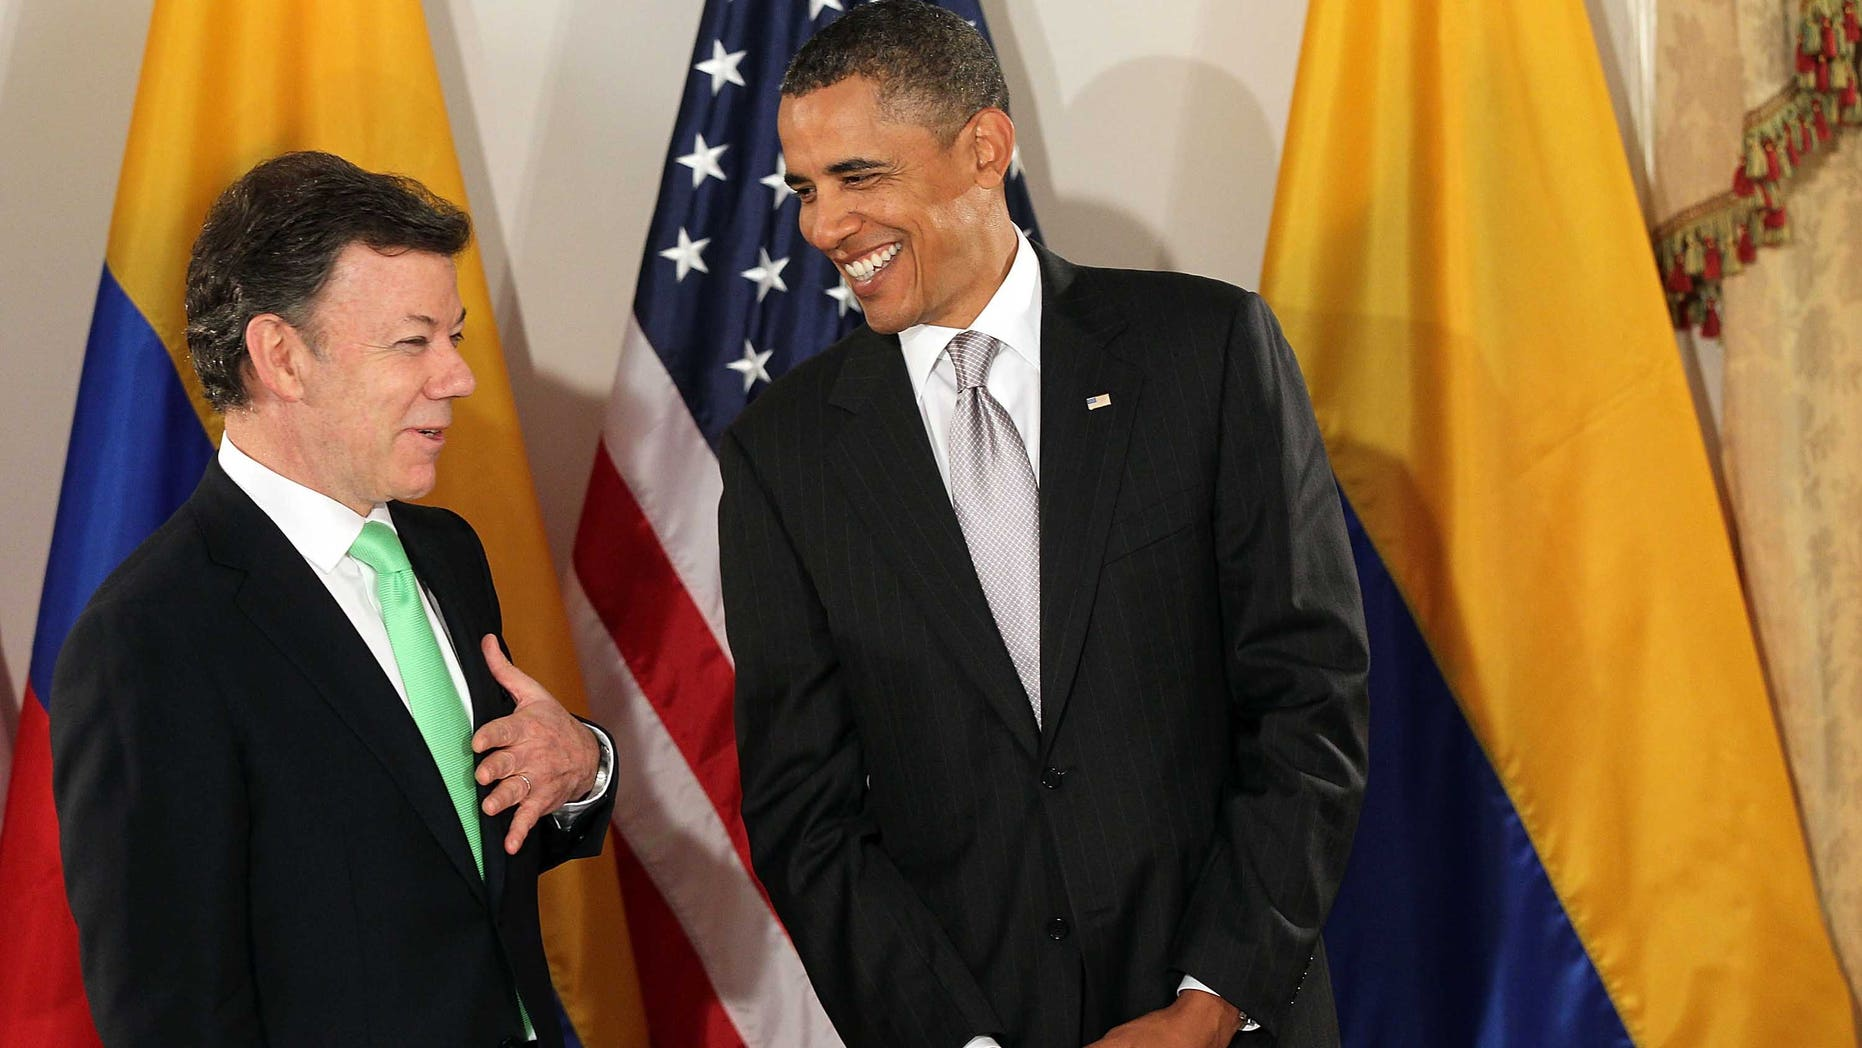 NEW YORK - SEPTEMBER 24:  (AFP OUT)  U.S. President Barack Obama (R) enters a bilateral meeting with President Juan Manuel Santos Calderon of Colombia September 24, 2010 in New York City. Obama has been in New York since Wednesday attending the annual General Assembly at the United Nations, where yesterday he stressed the need for a resolution between Israel and Palestine, and a renewed international effort to keep Iran from attaining nuclear weapons.  (Photo by Spencer Platt/Getty Images)